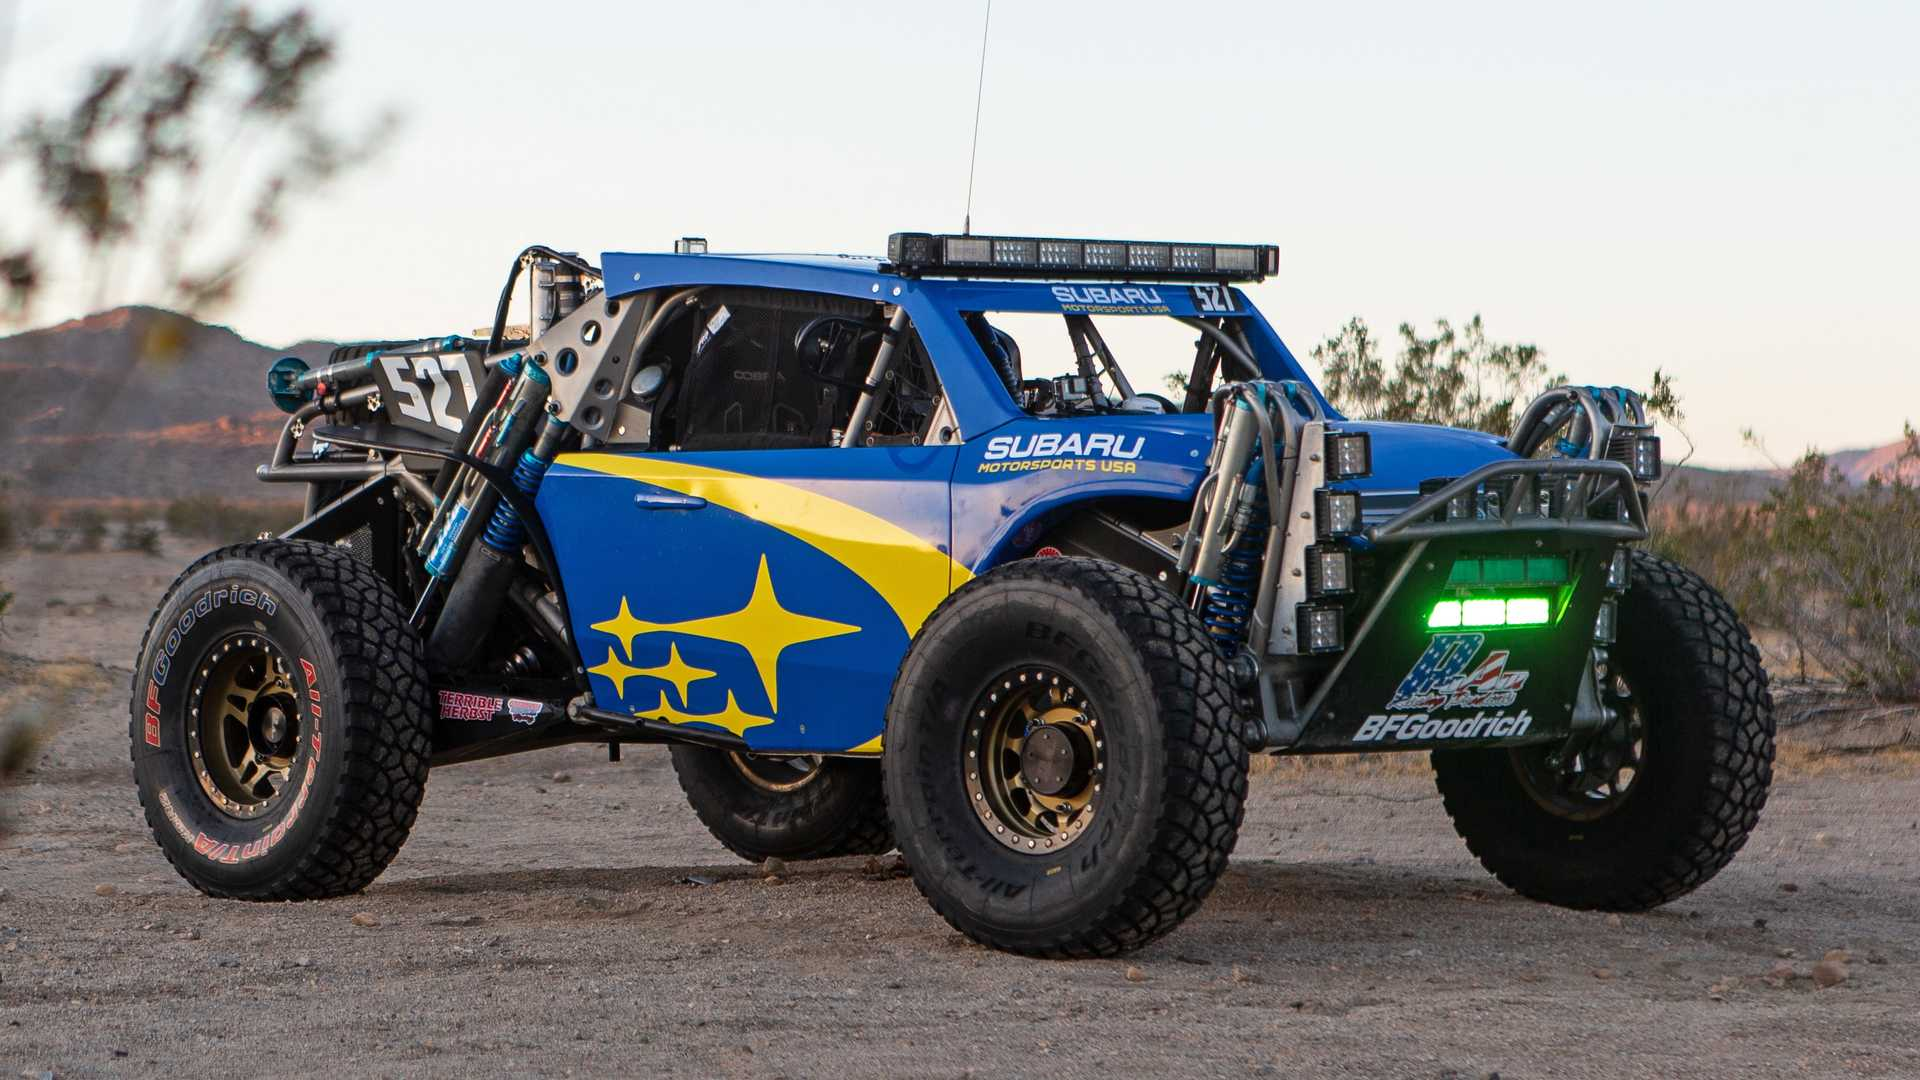 Subaru Crosstrek Desert Racer Looks Ready To Beat Baja